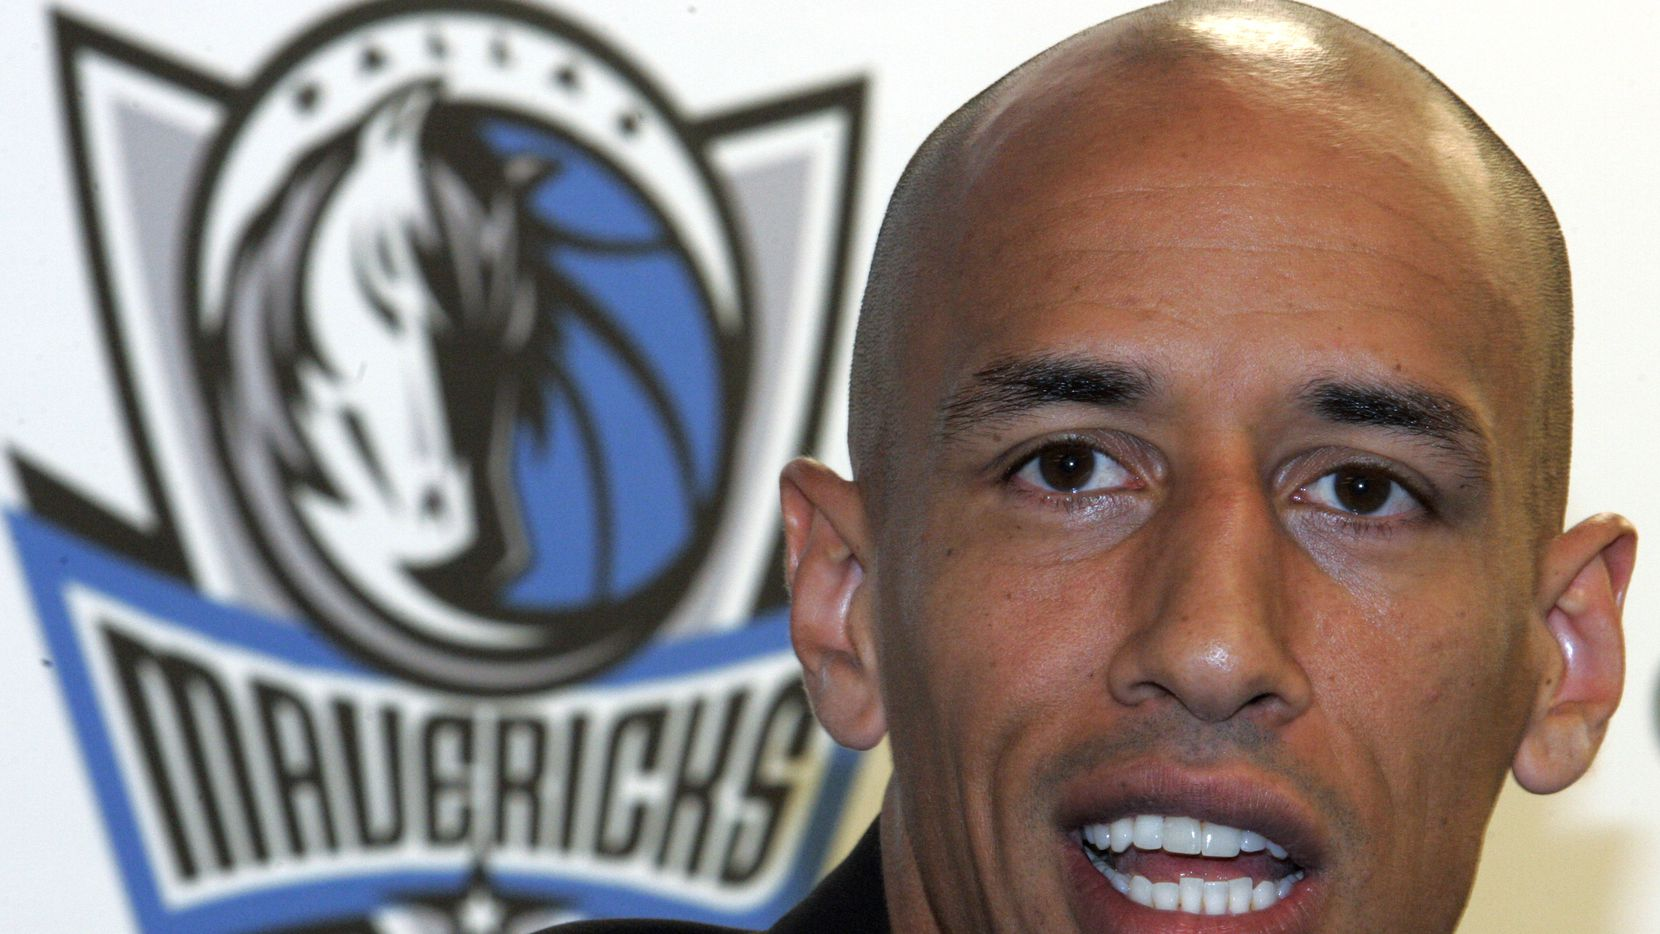 Doug Christie talks about signing with the Dallas Mavericks during a press conference on Friday August 19, 2005 at American Airlines Center in Dallas. Mavericks also signed Darrell Armstrong, DeSagana Diop, Josh Powell and Rawle Marshall.